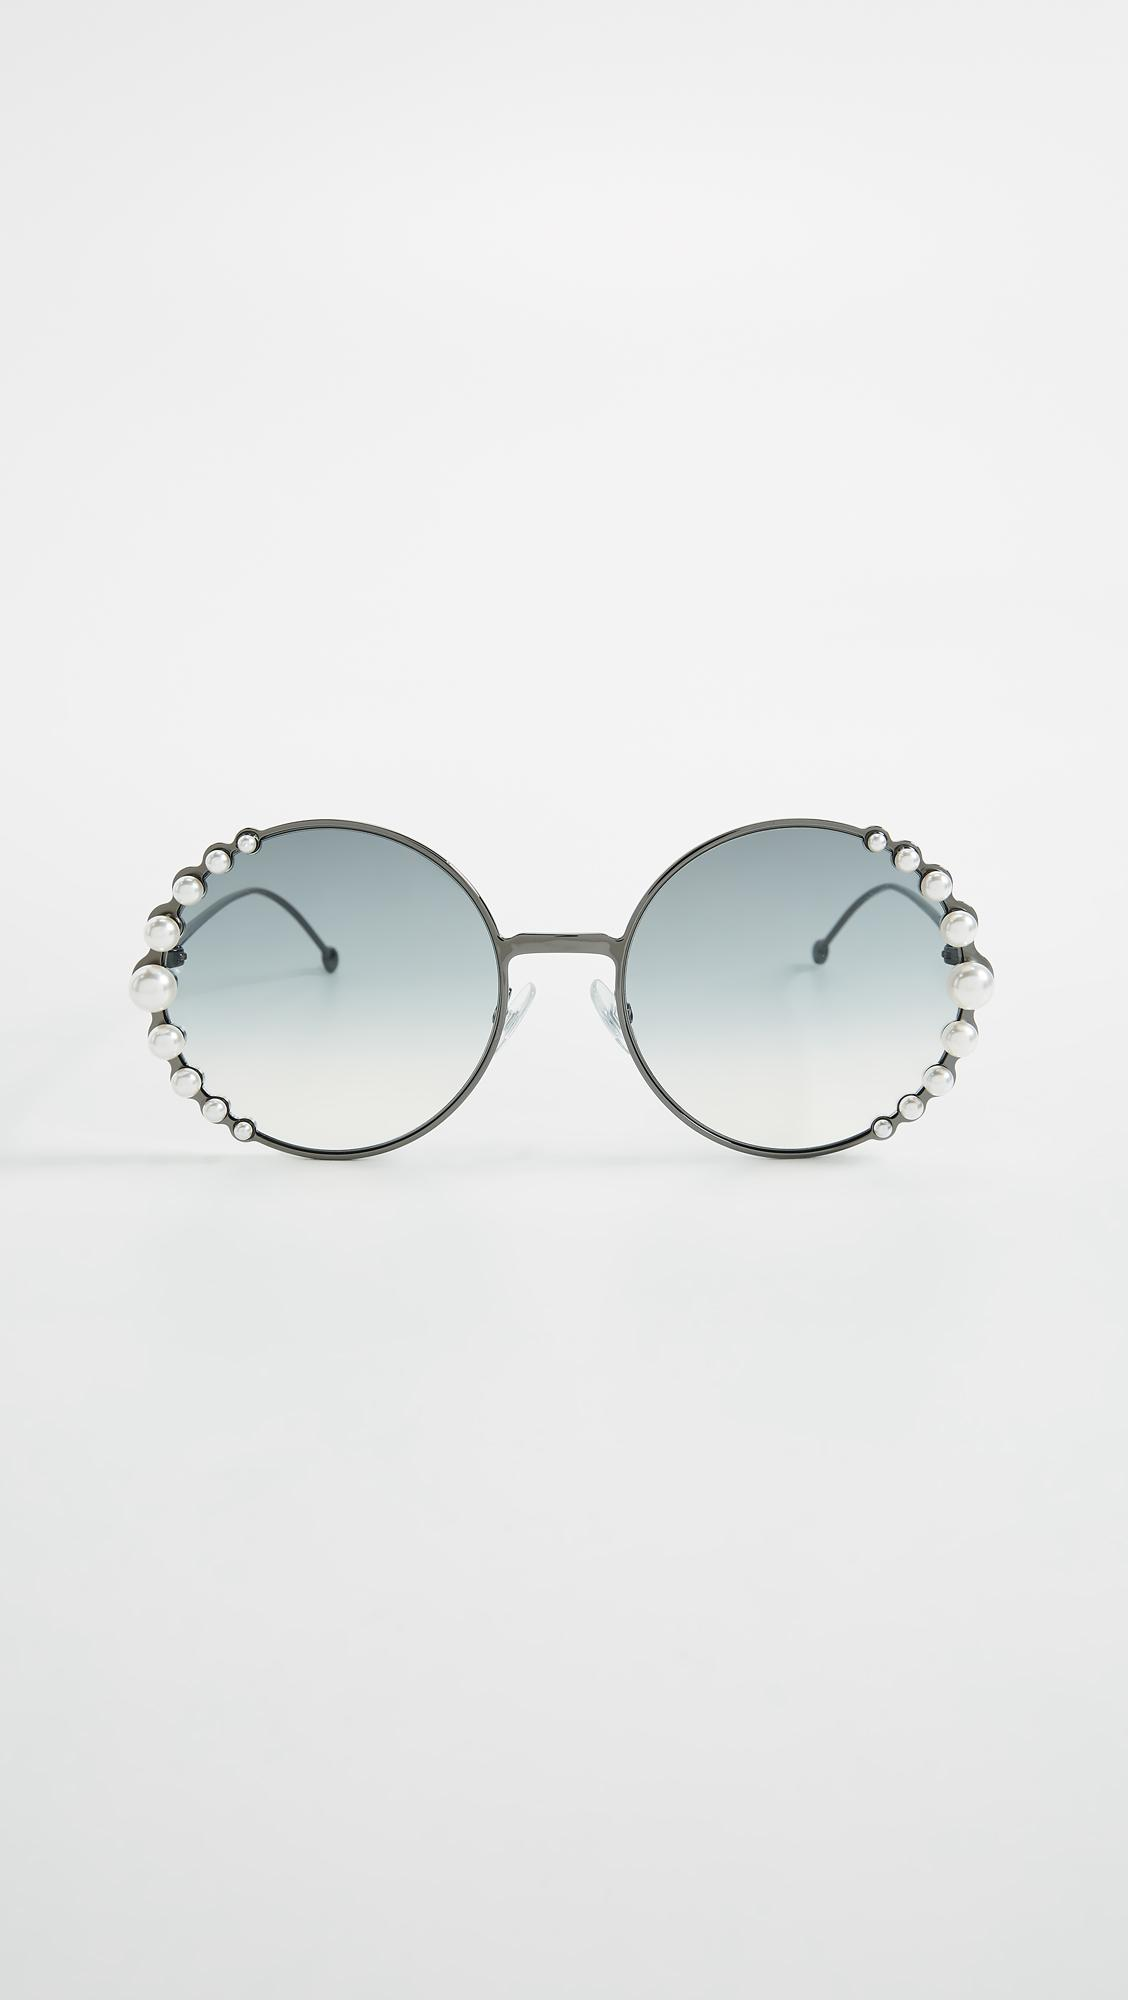 1b3bc24ad3b Gallery. Previously sold at  Shopbop · Women s Round Sunglasses ...